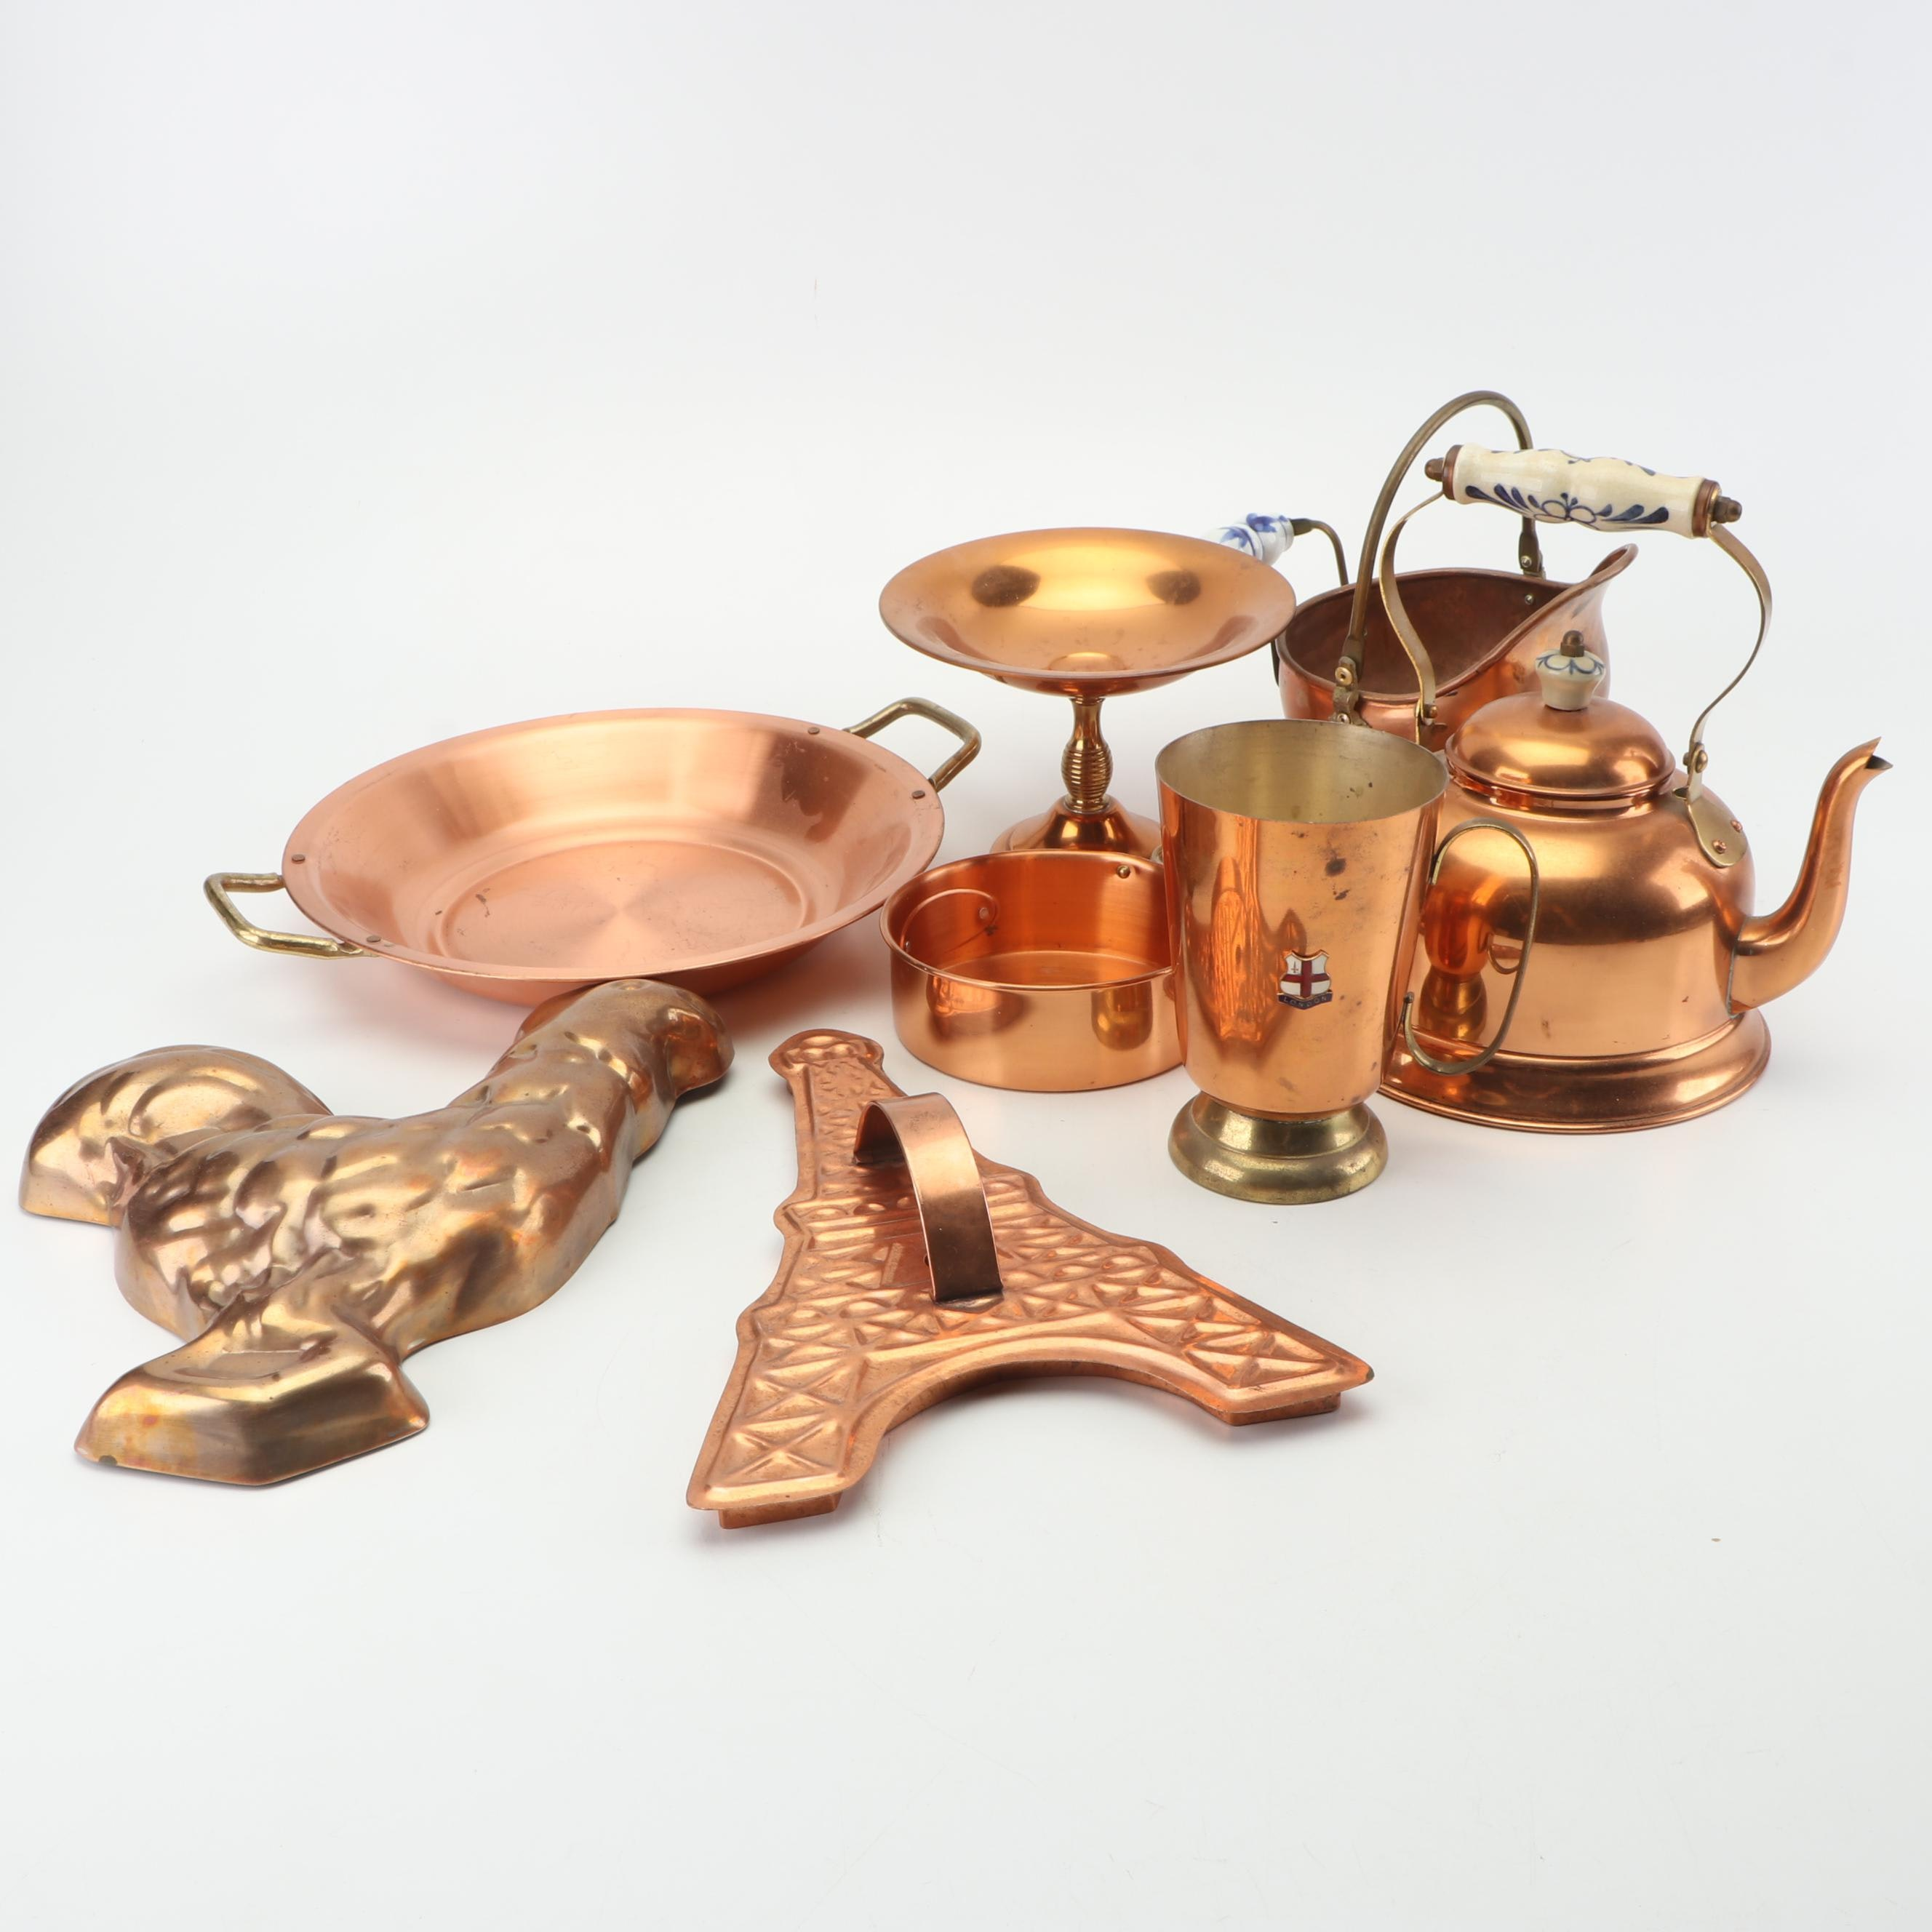 Copper Teakettle and Other Kitchenware